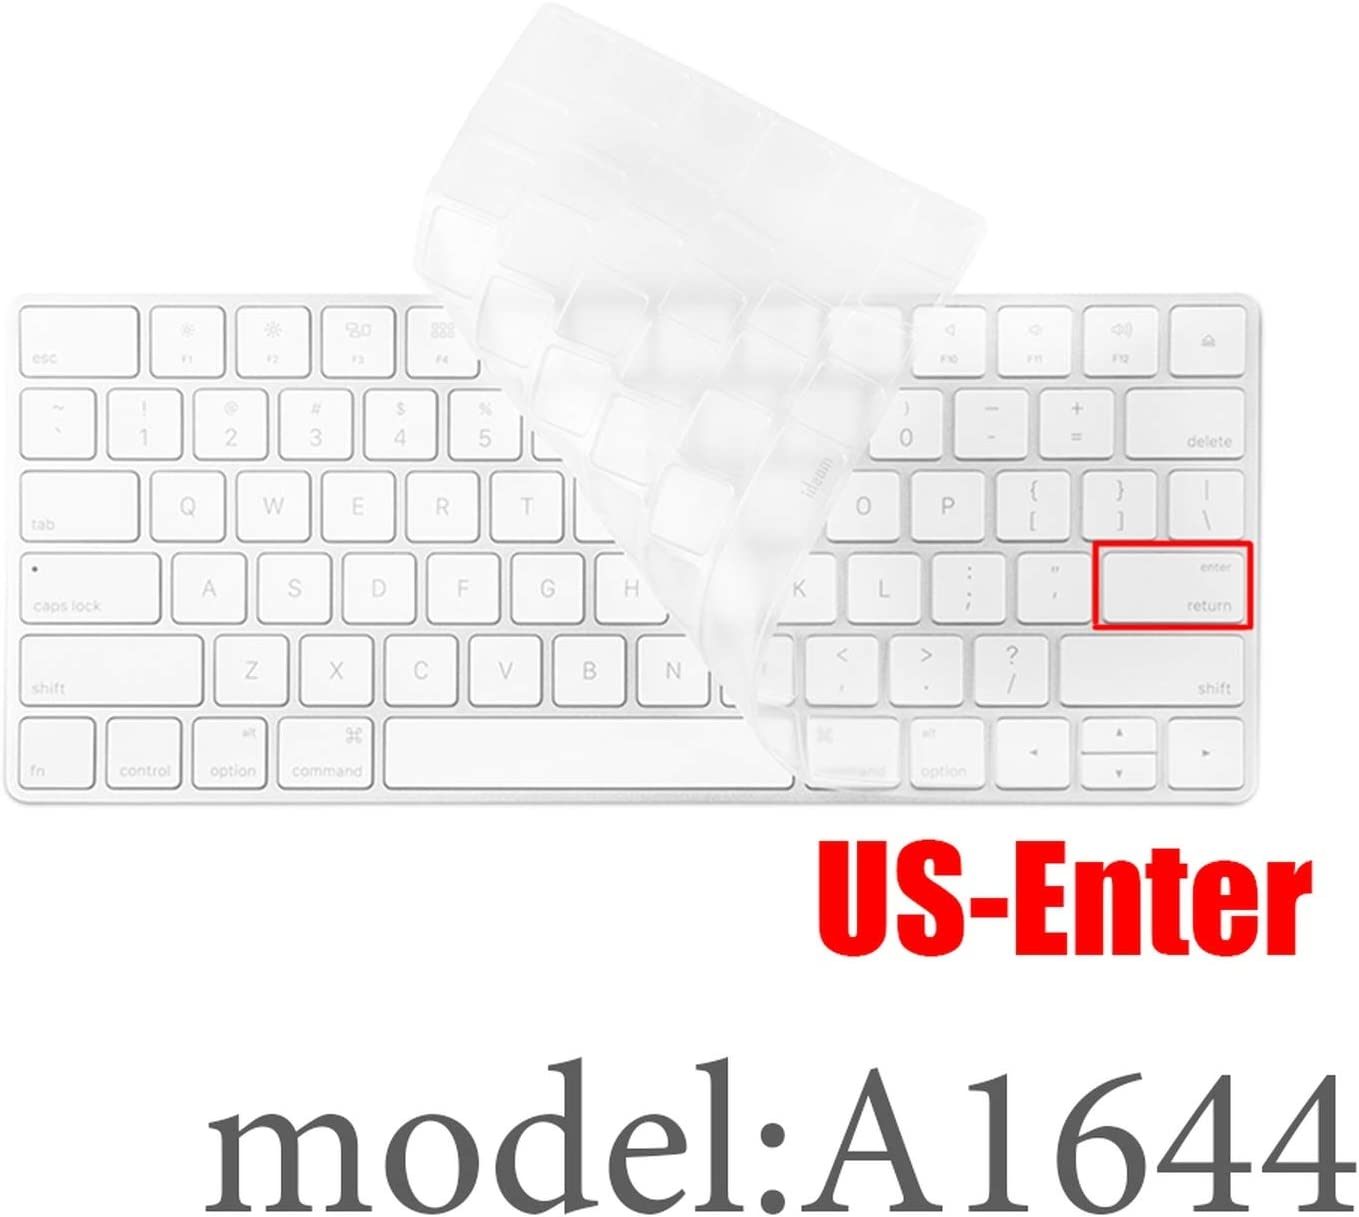 Desktop PC Compatible for Bluetooth Wireless Keyboard MLA22LL/ A1644 A1314 iMac Keyboard Cover Protector Cover US/EU Version,US-key-A1644